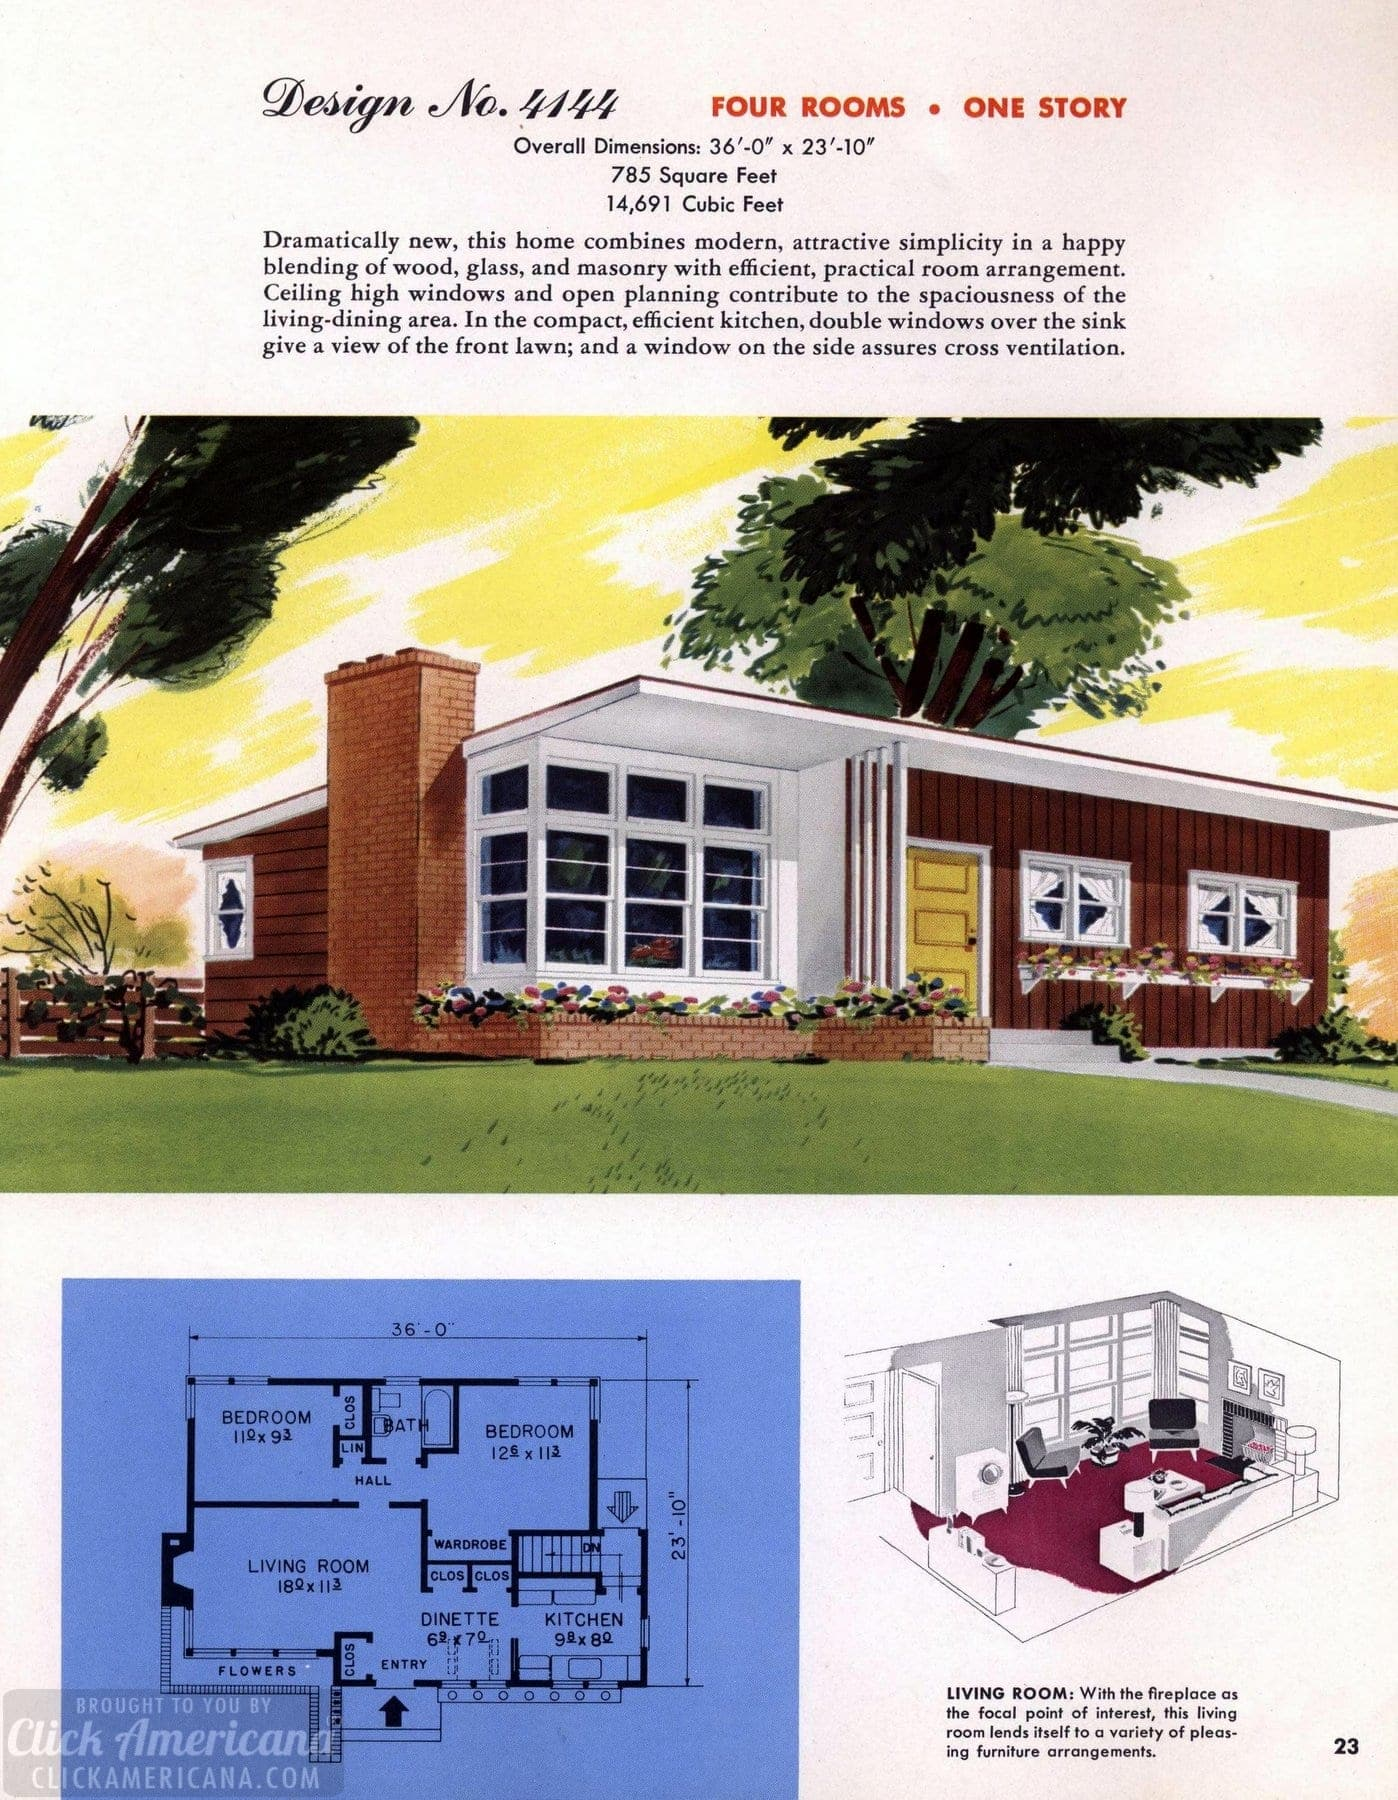 Classic house plans from 1955 50s suburban home designs at click americana 24